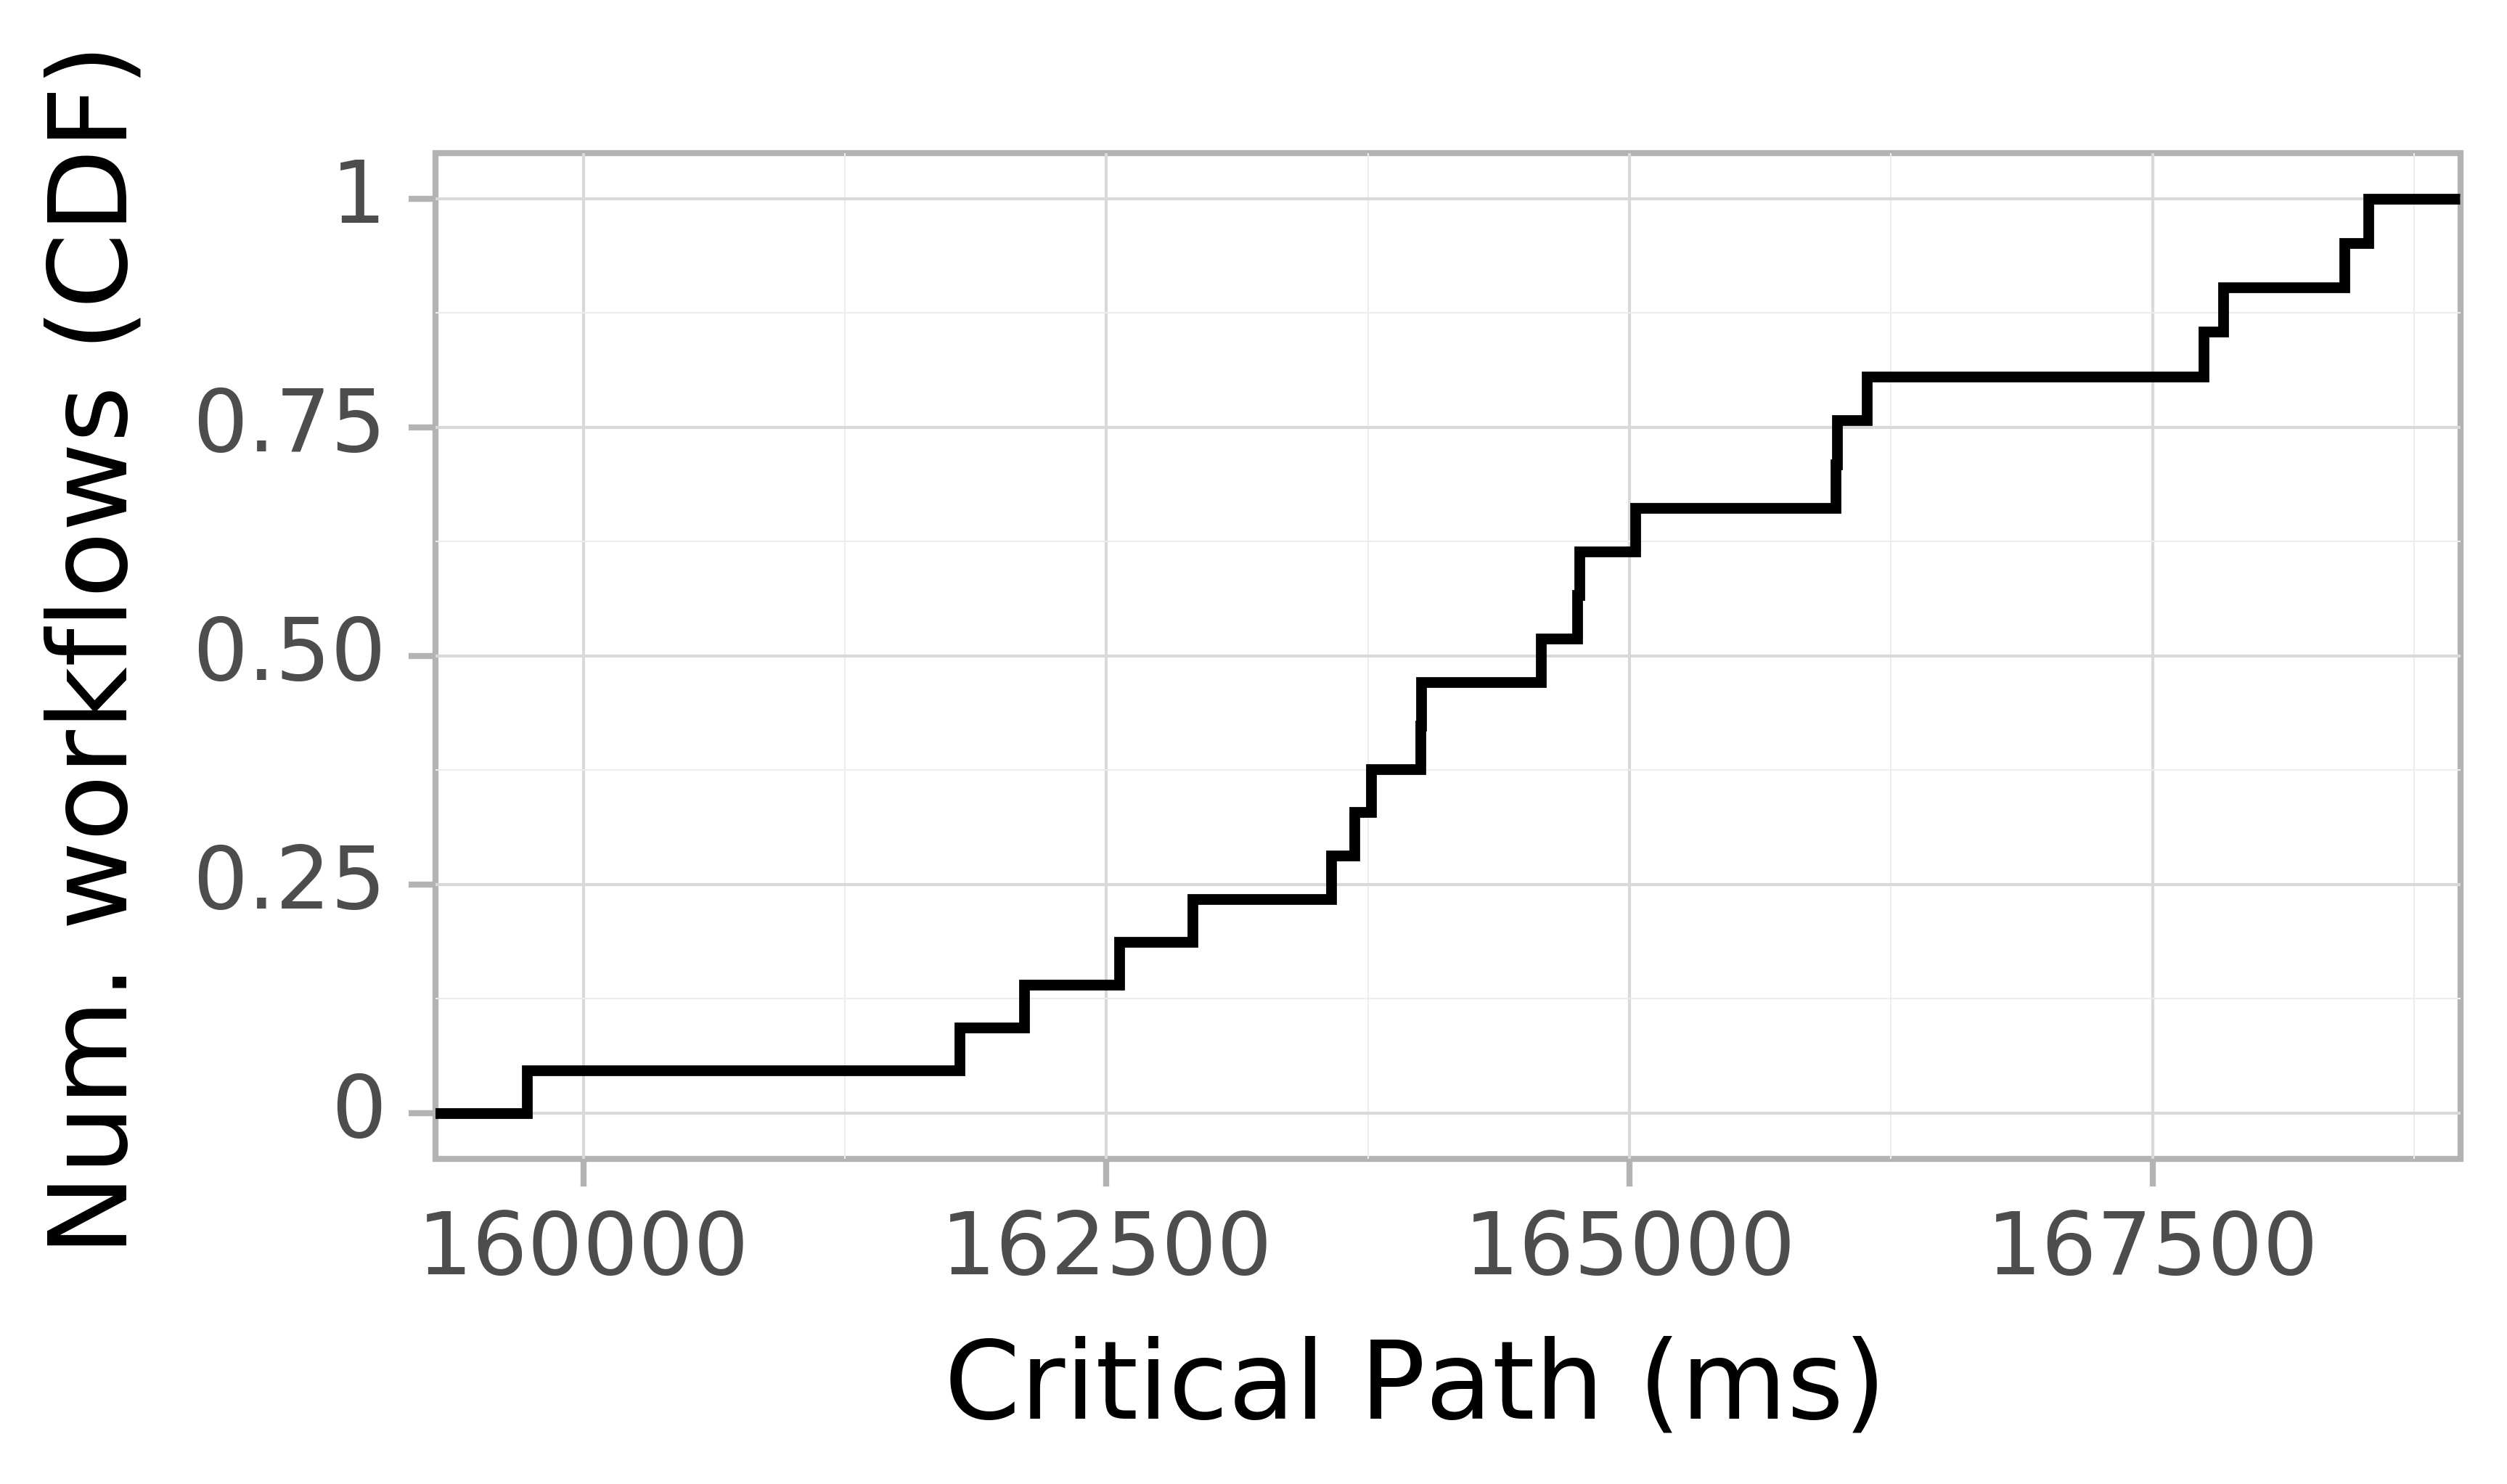 Job runtime CDF graph for the askalon-new_ee61 trace.